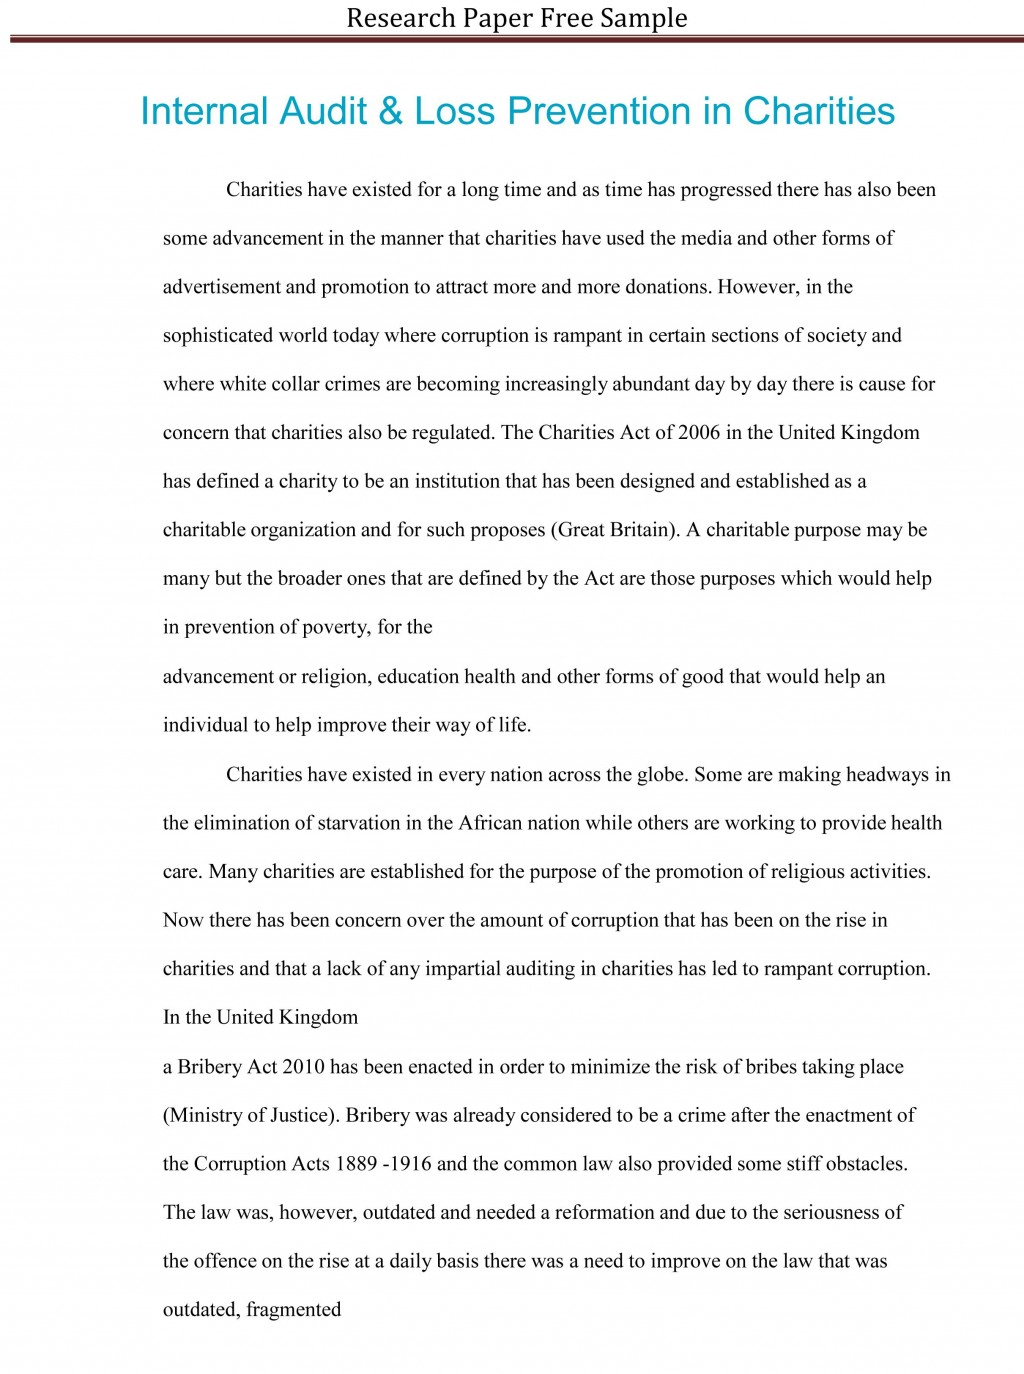 008 Research Paper Already Written Papers Excellent Buy Pre For Free Large